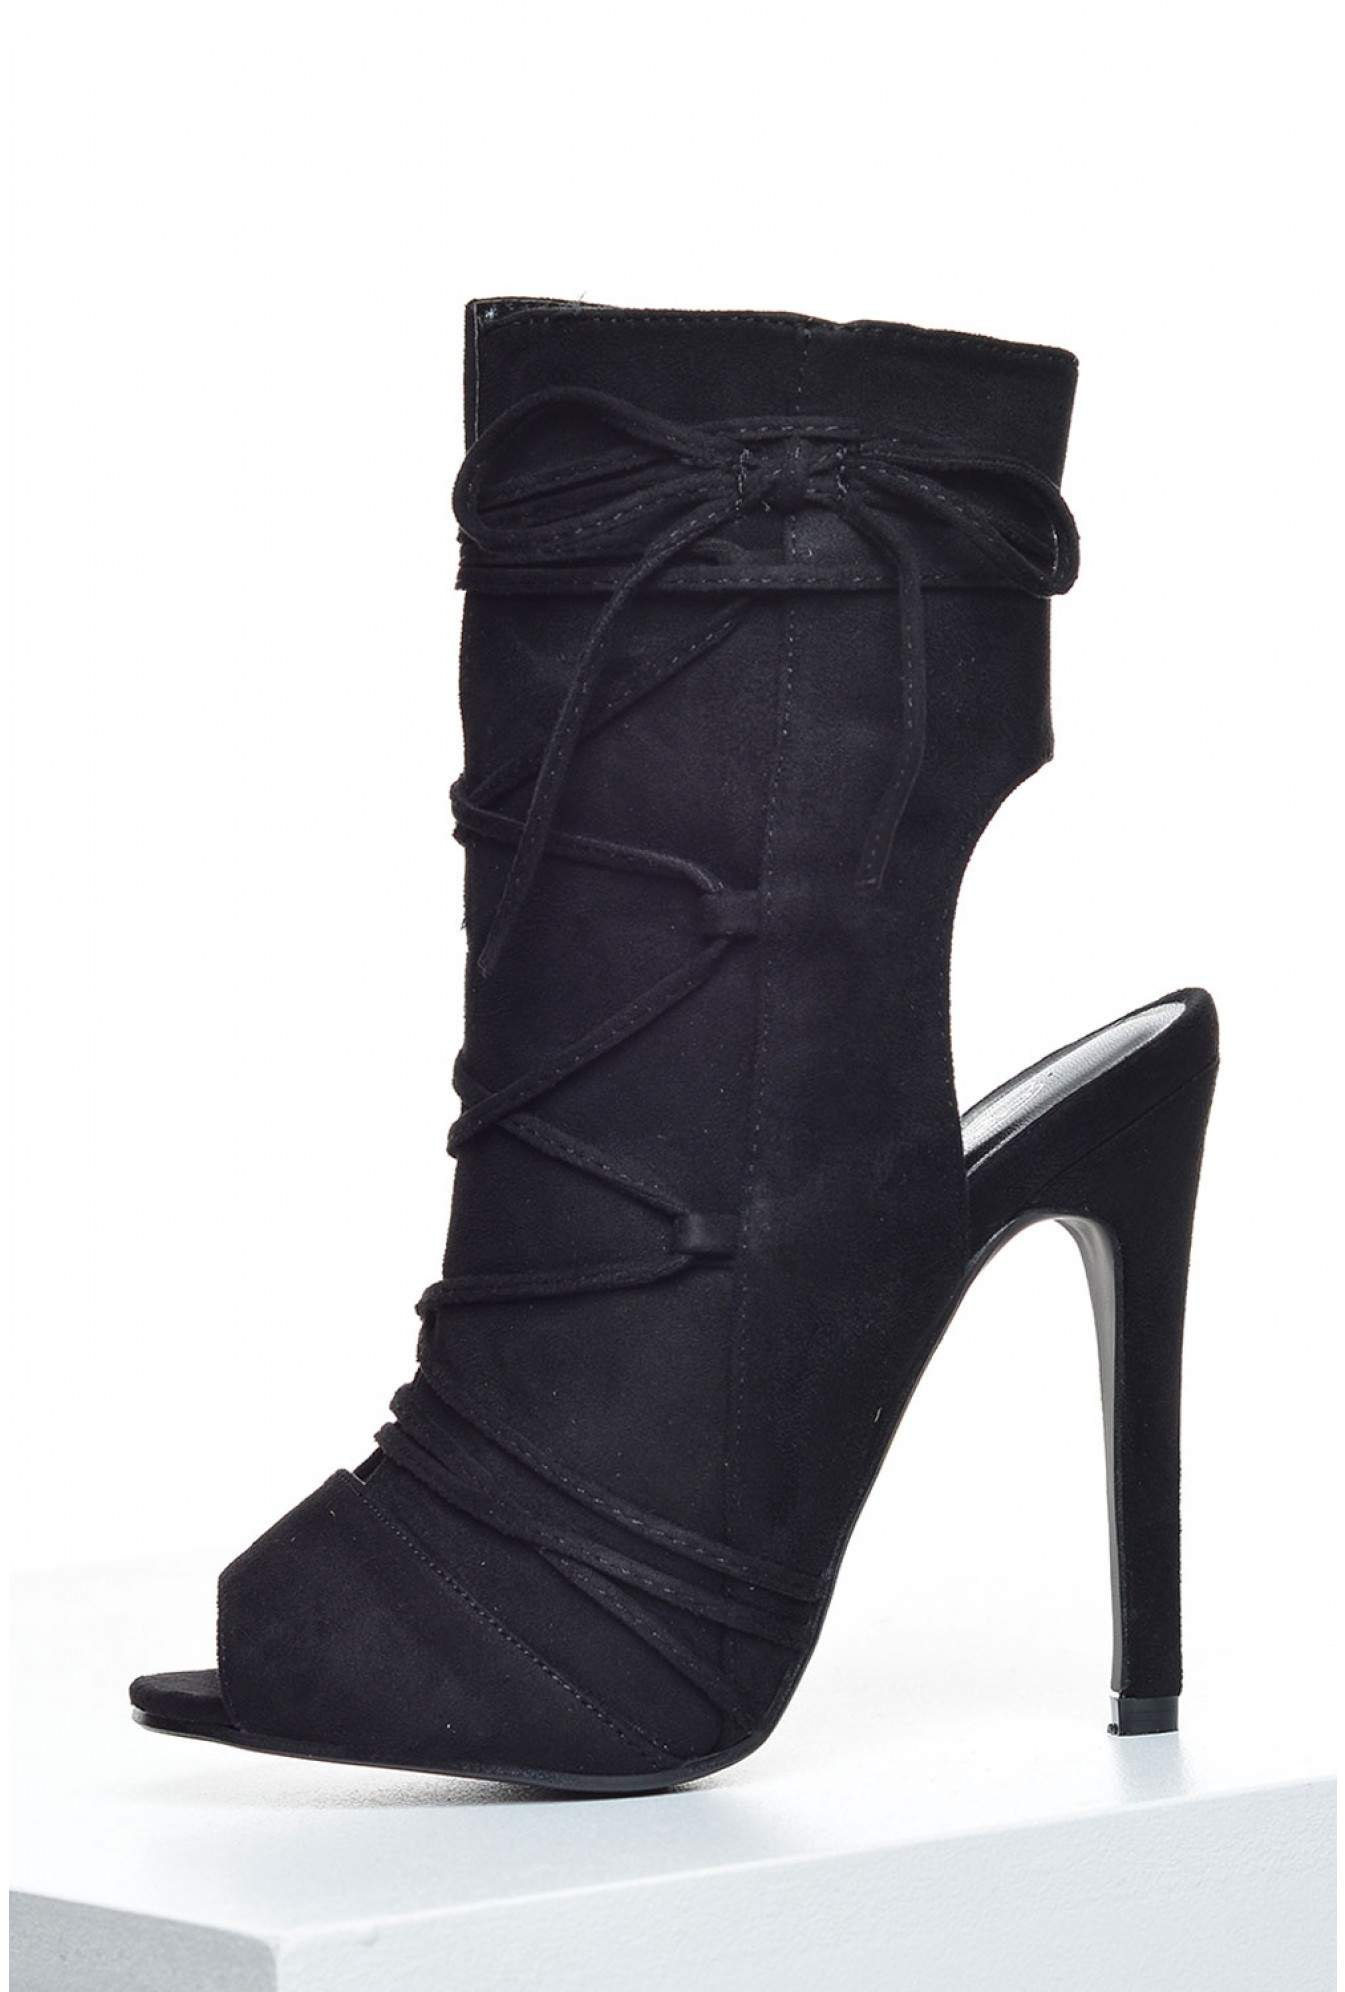 18d3c34b24f More Views. Fatima Peep Toe Ankle Boots in Black Suede